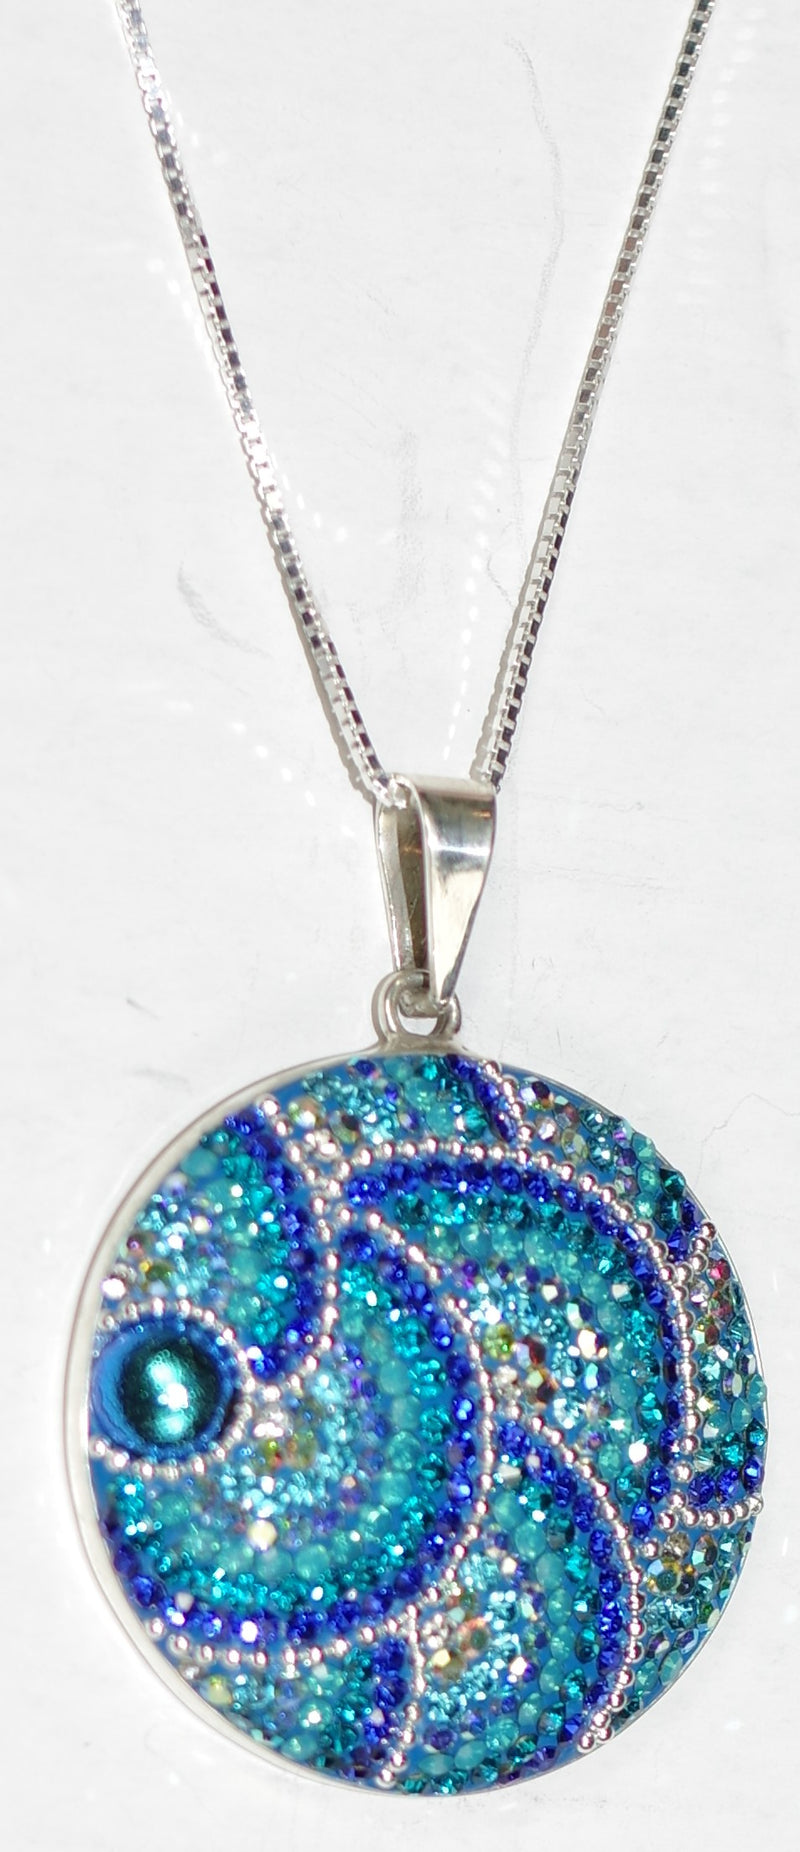 "MOSAICO PENDANT JUMBO ROUND-C: multi color Austrian crystals in 1.25"" solid silver pendant, 18-20 inch adjustable silver chain"